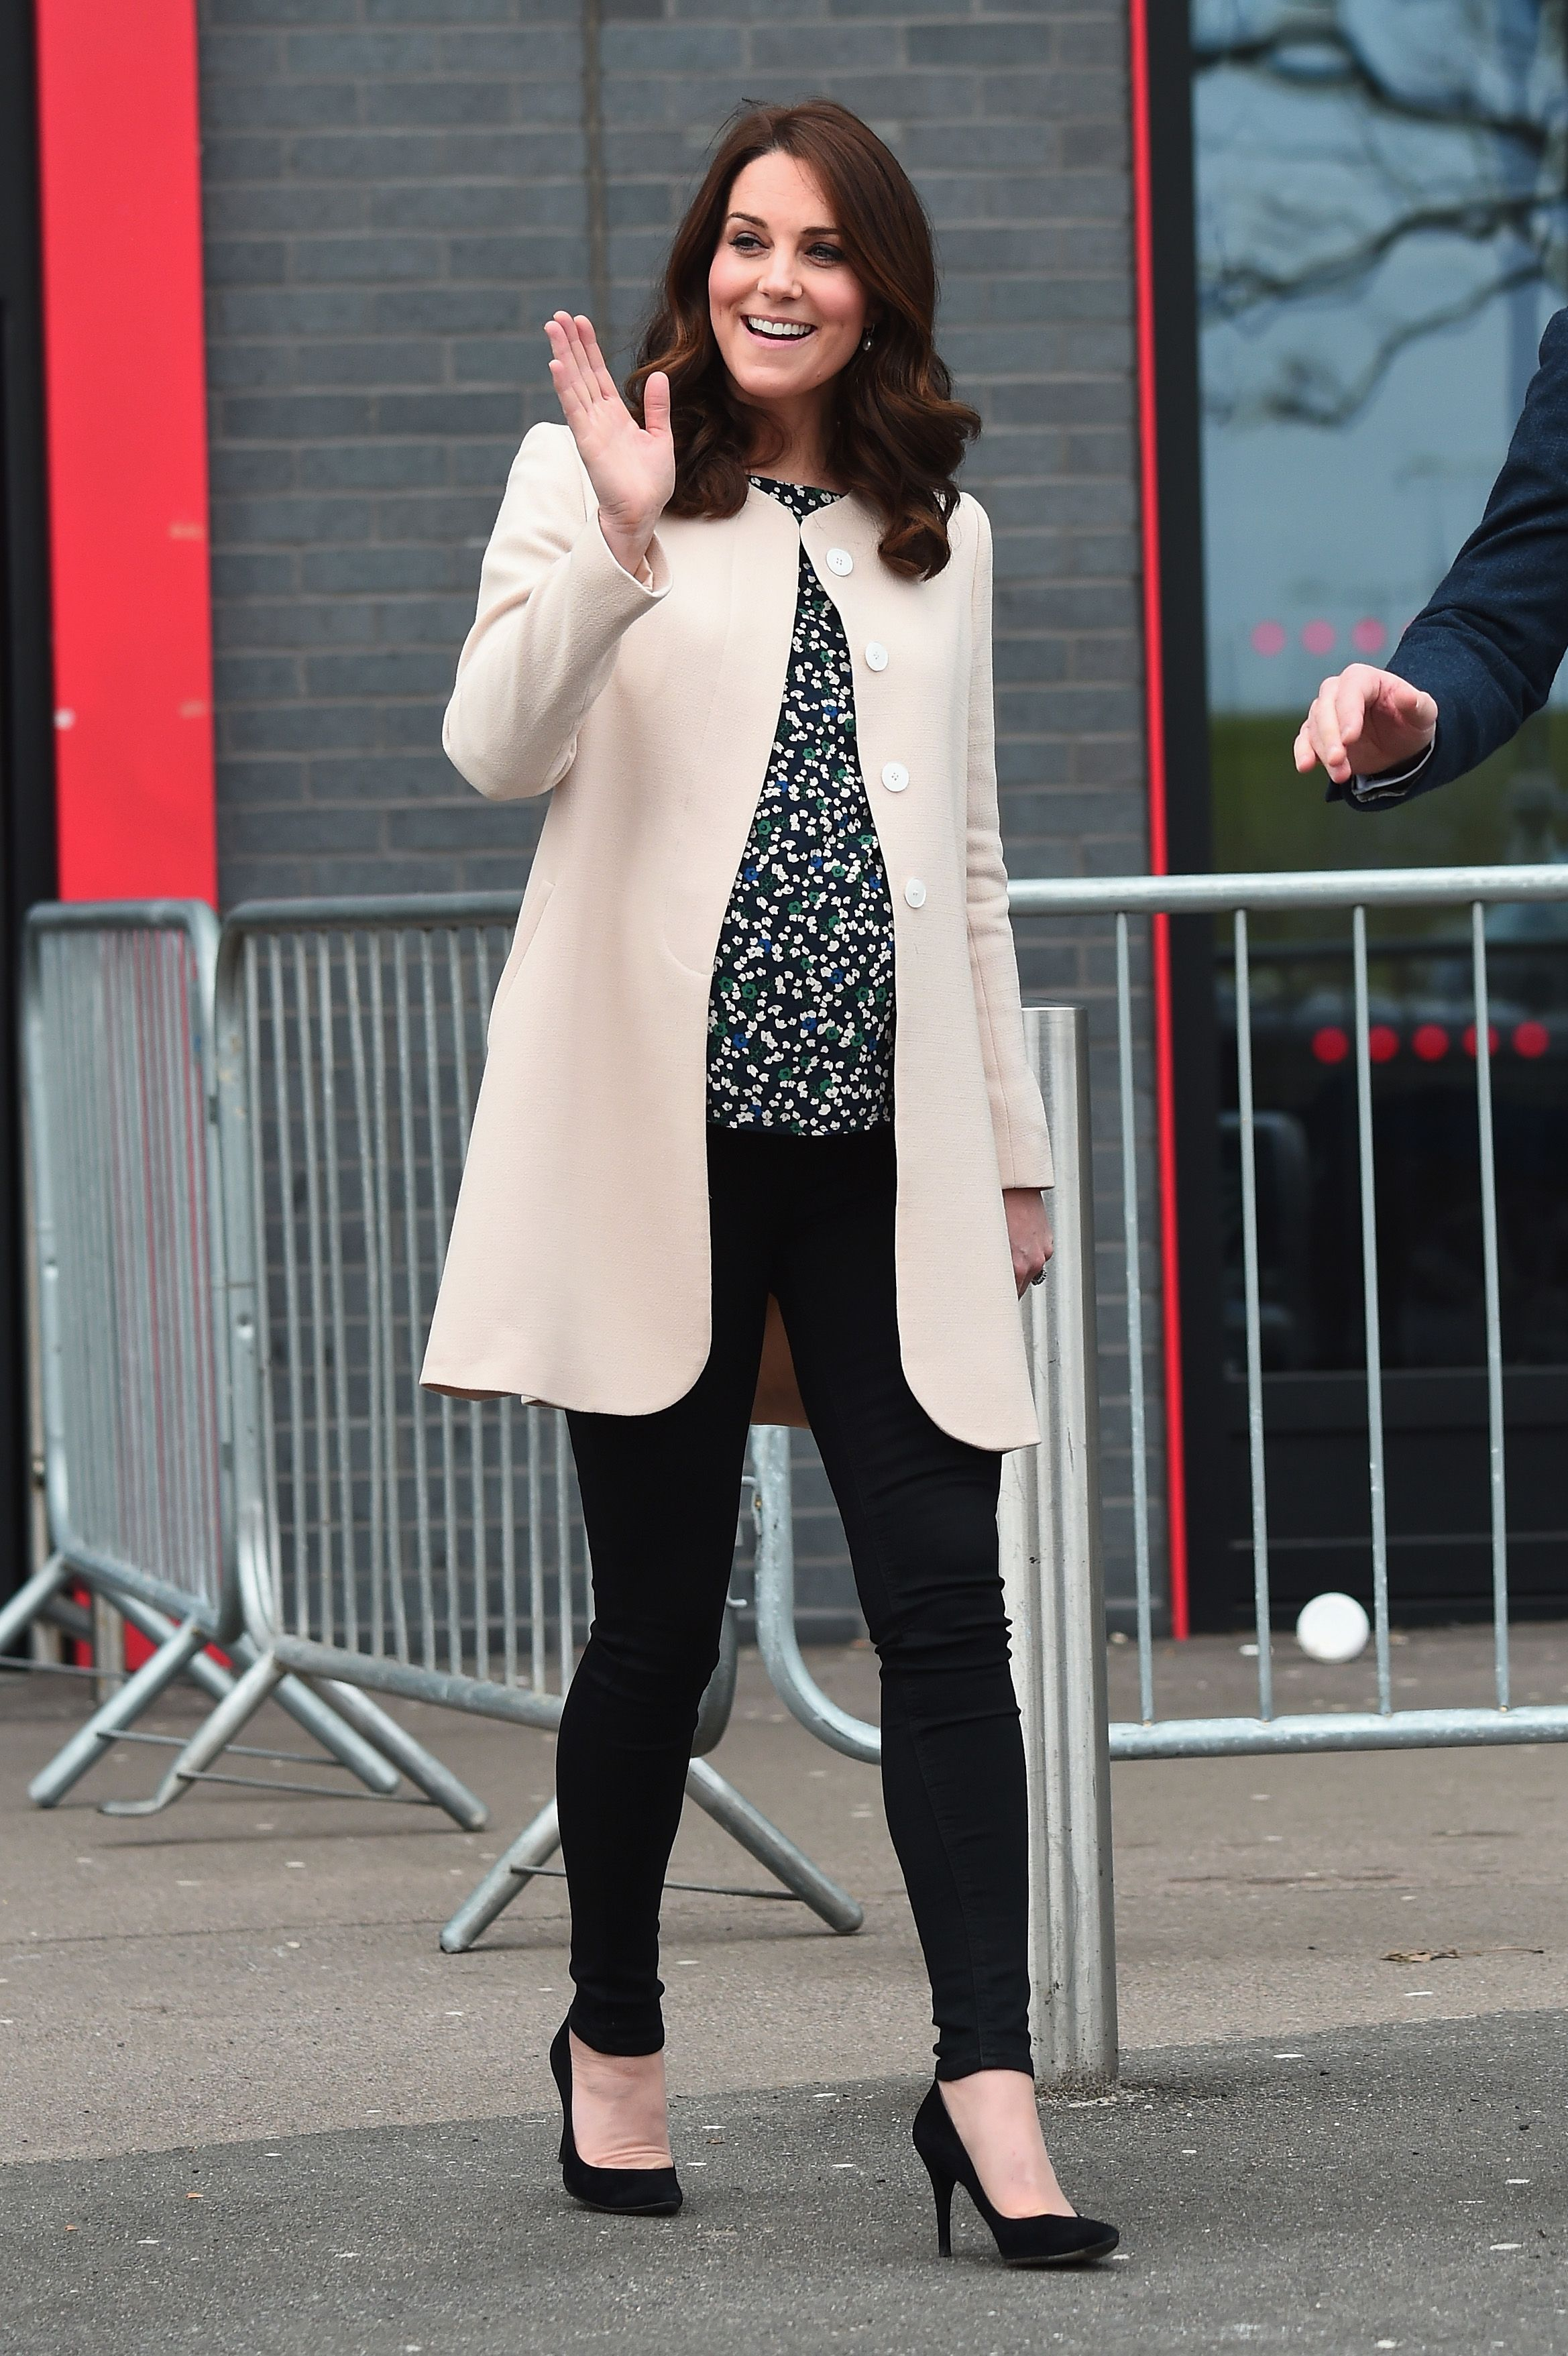 8593ad4877f2ee Kate Middleton's Best Maternity Outfits - Kate's Chic Pregnant Style